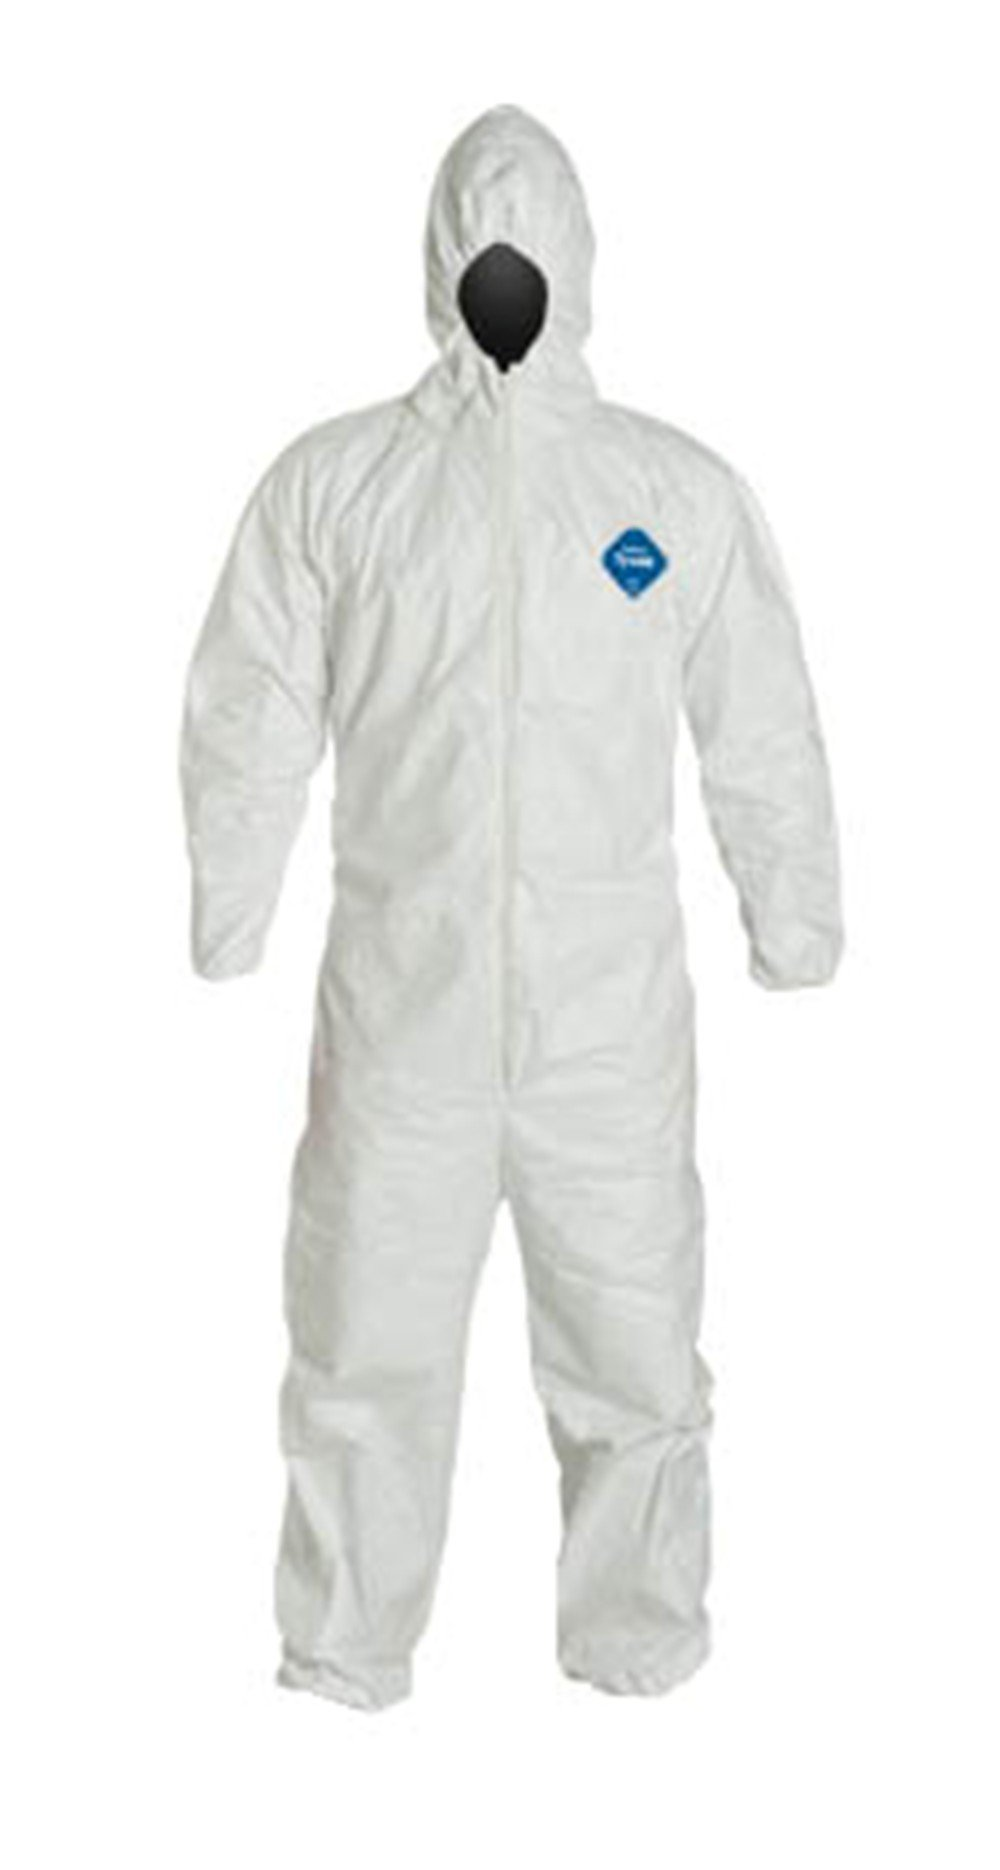 XL Tyvek Coverall W/ Hood, Zipper, Elastic Wrist & Ankle (XL-5 Suits) TY127S WH - XL - 5